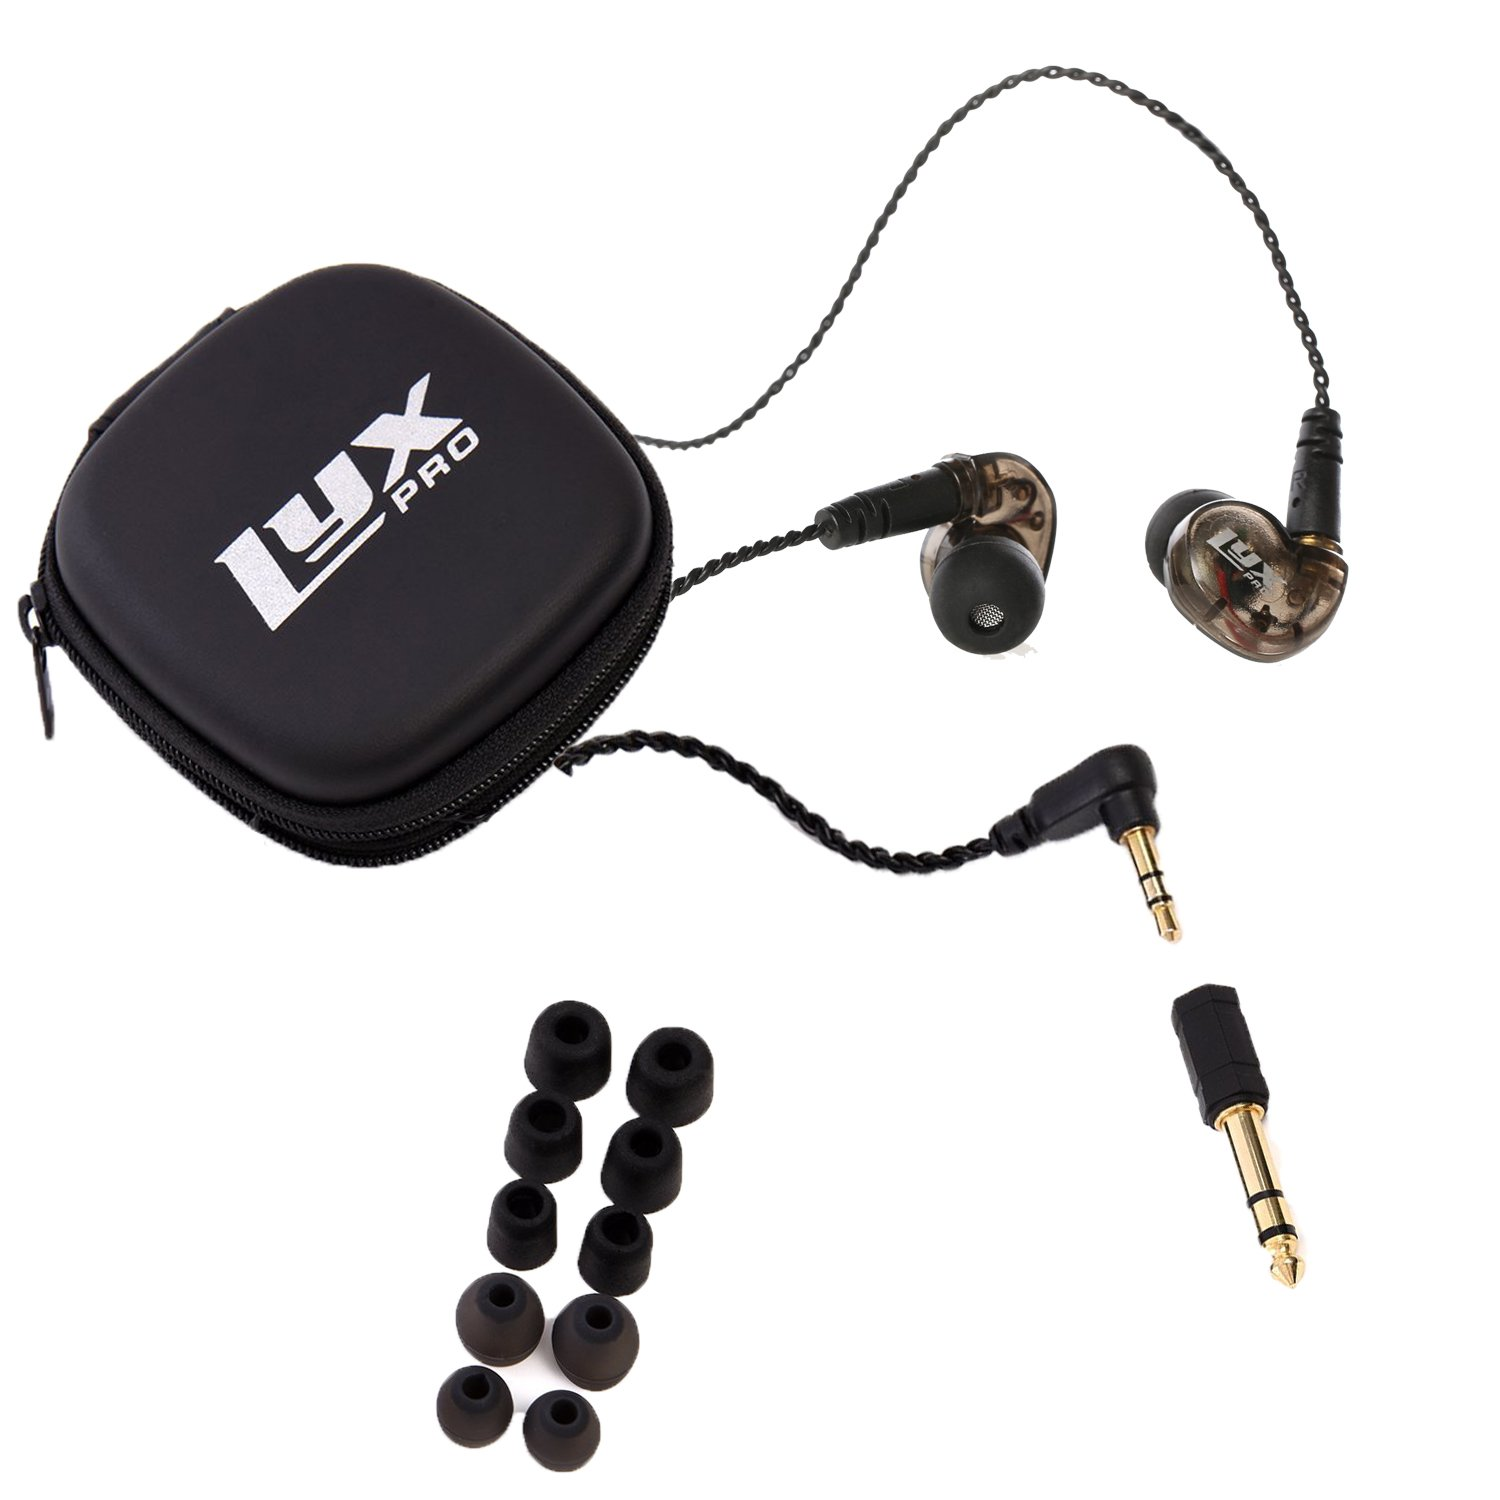 LyxPro ERP-10 in-Ear Monitors with Professional, Universal Fit Earphones for Musicians – Detachable Cables, Carrying Case 6 Pairs of Tips for Studio or Stage